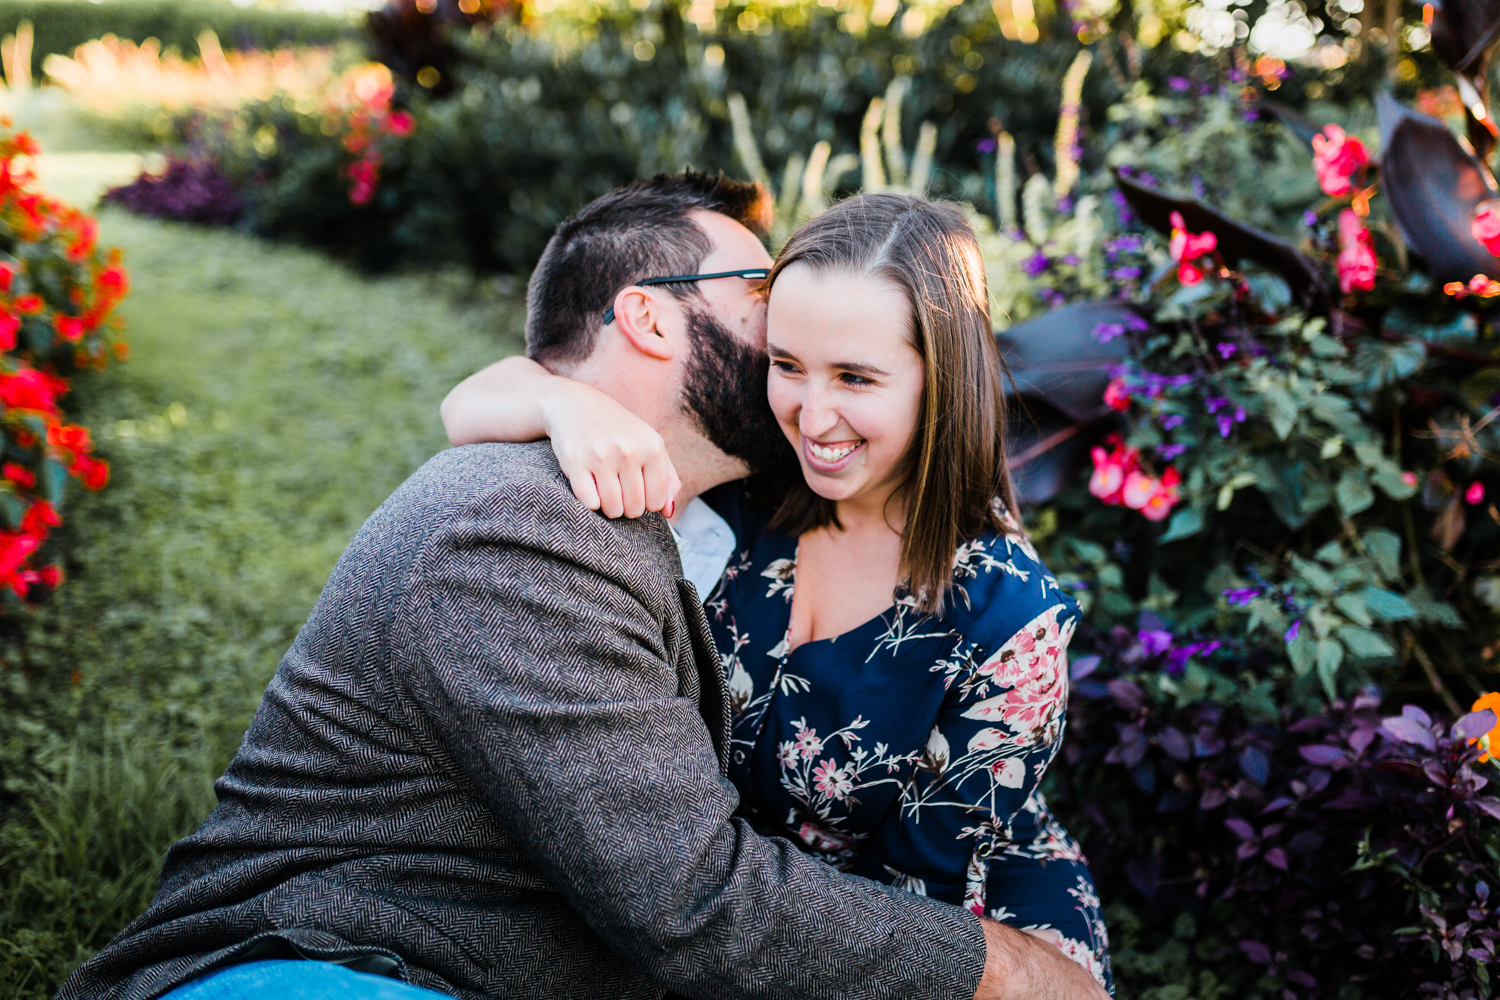 romantic engagement session at Rawlings Conservatory in Baltimore MD - best romantic photographer in Maryland